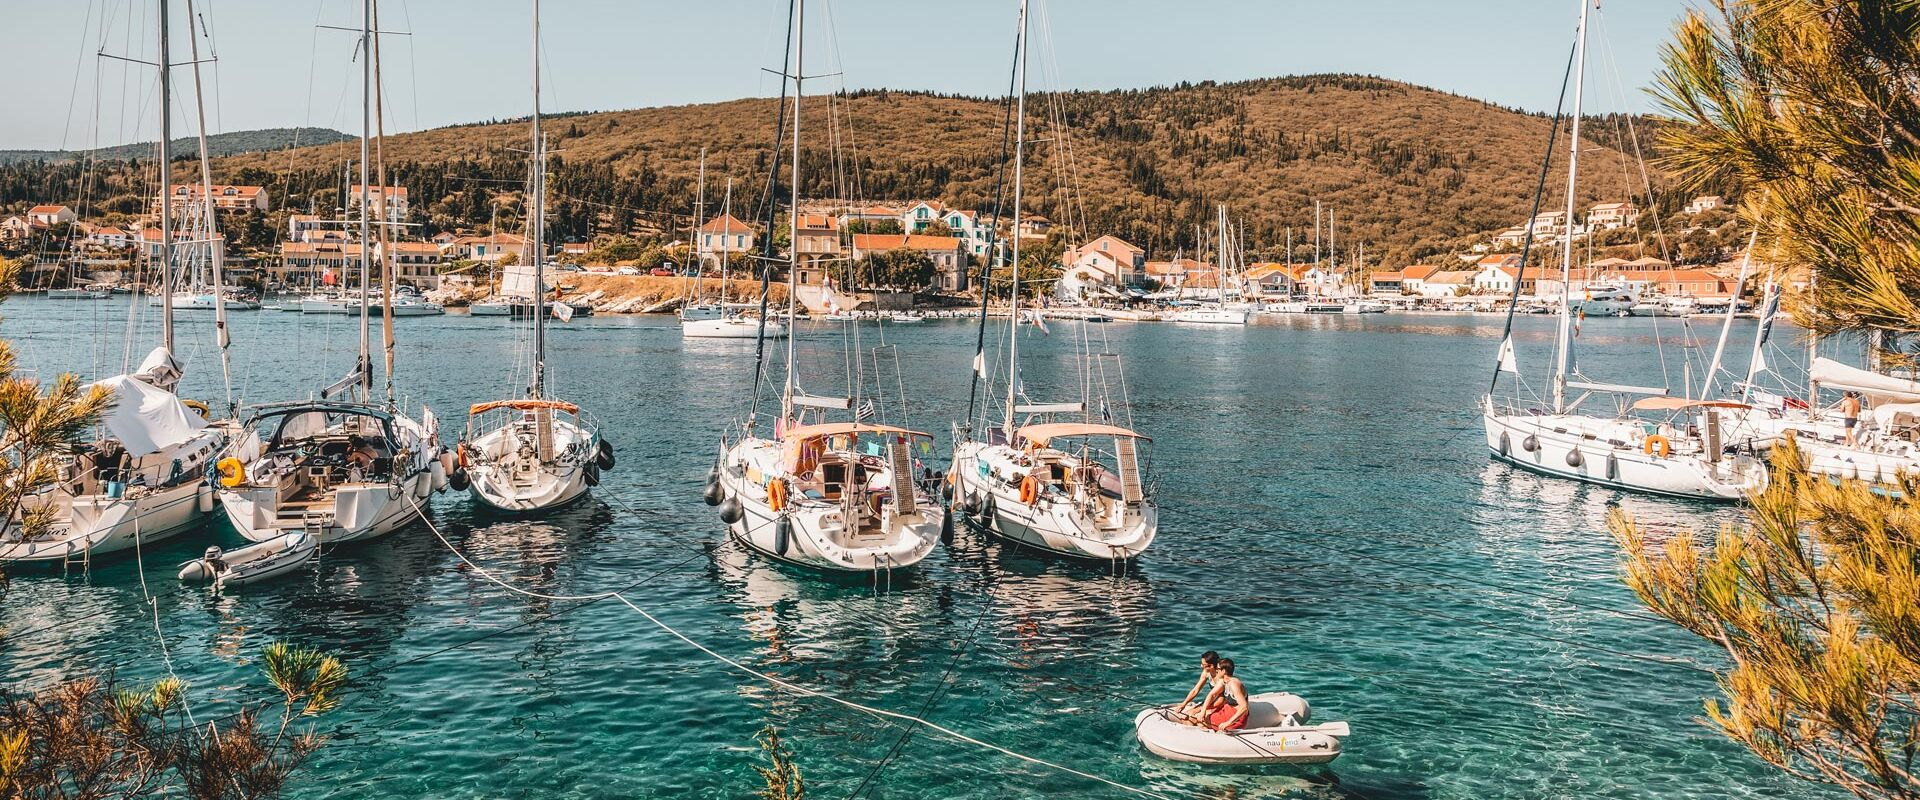 One of the highlights of any stay on Kefalonia, the fishing village of Fiskardo has been attracting visitors for decades